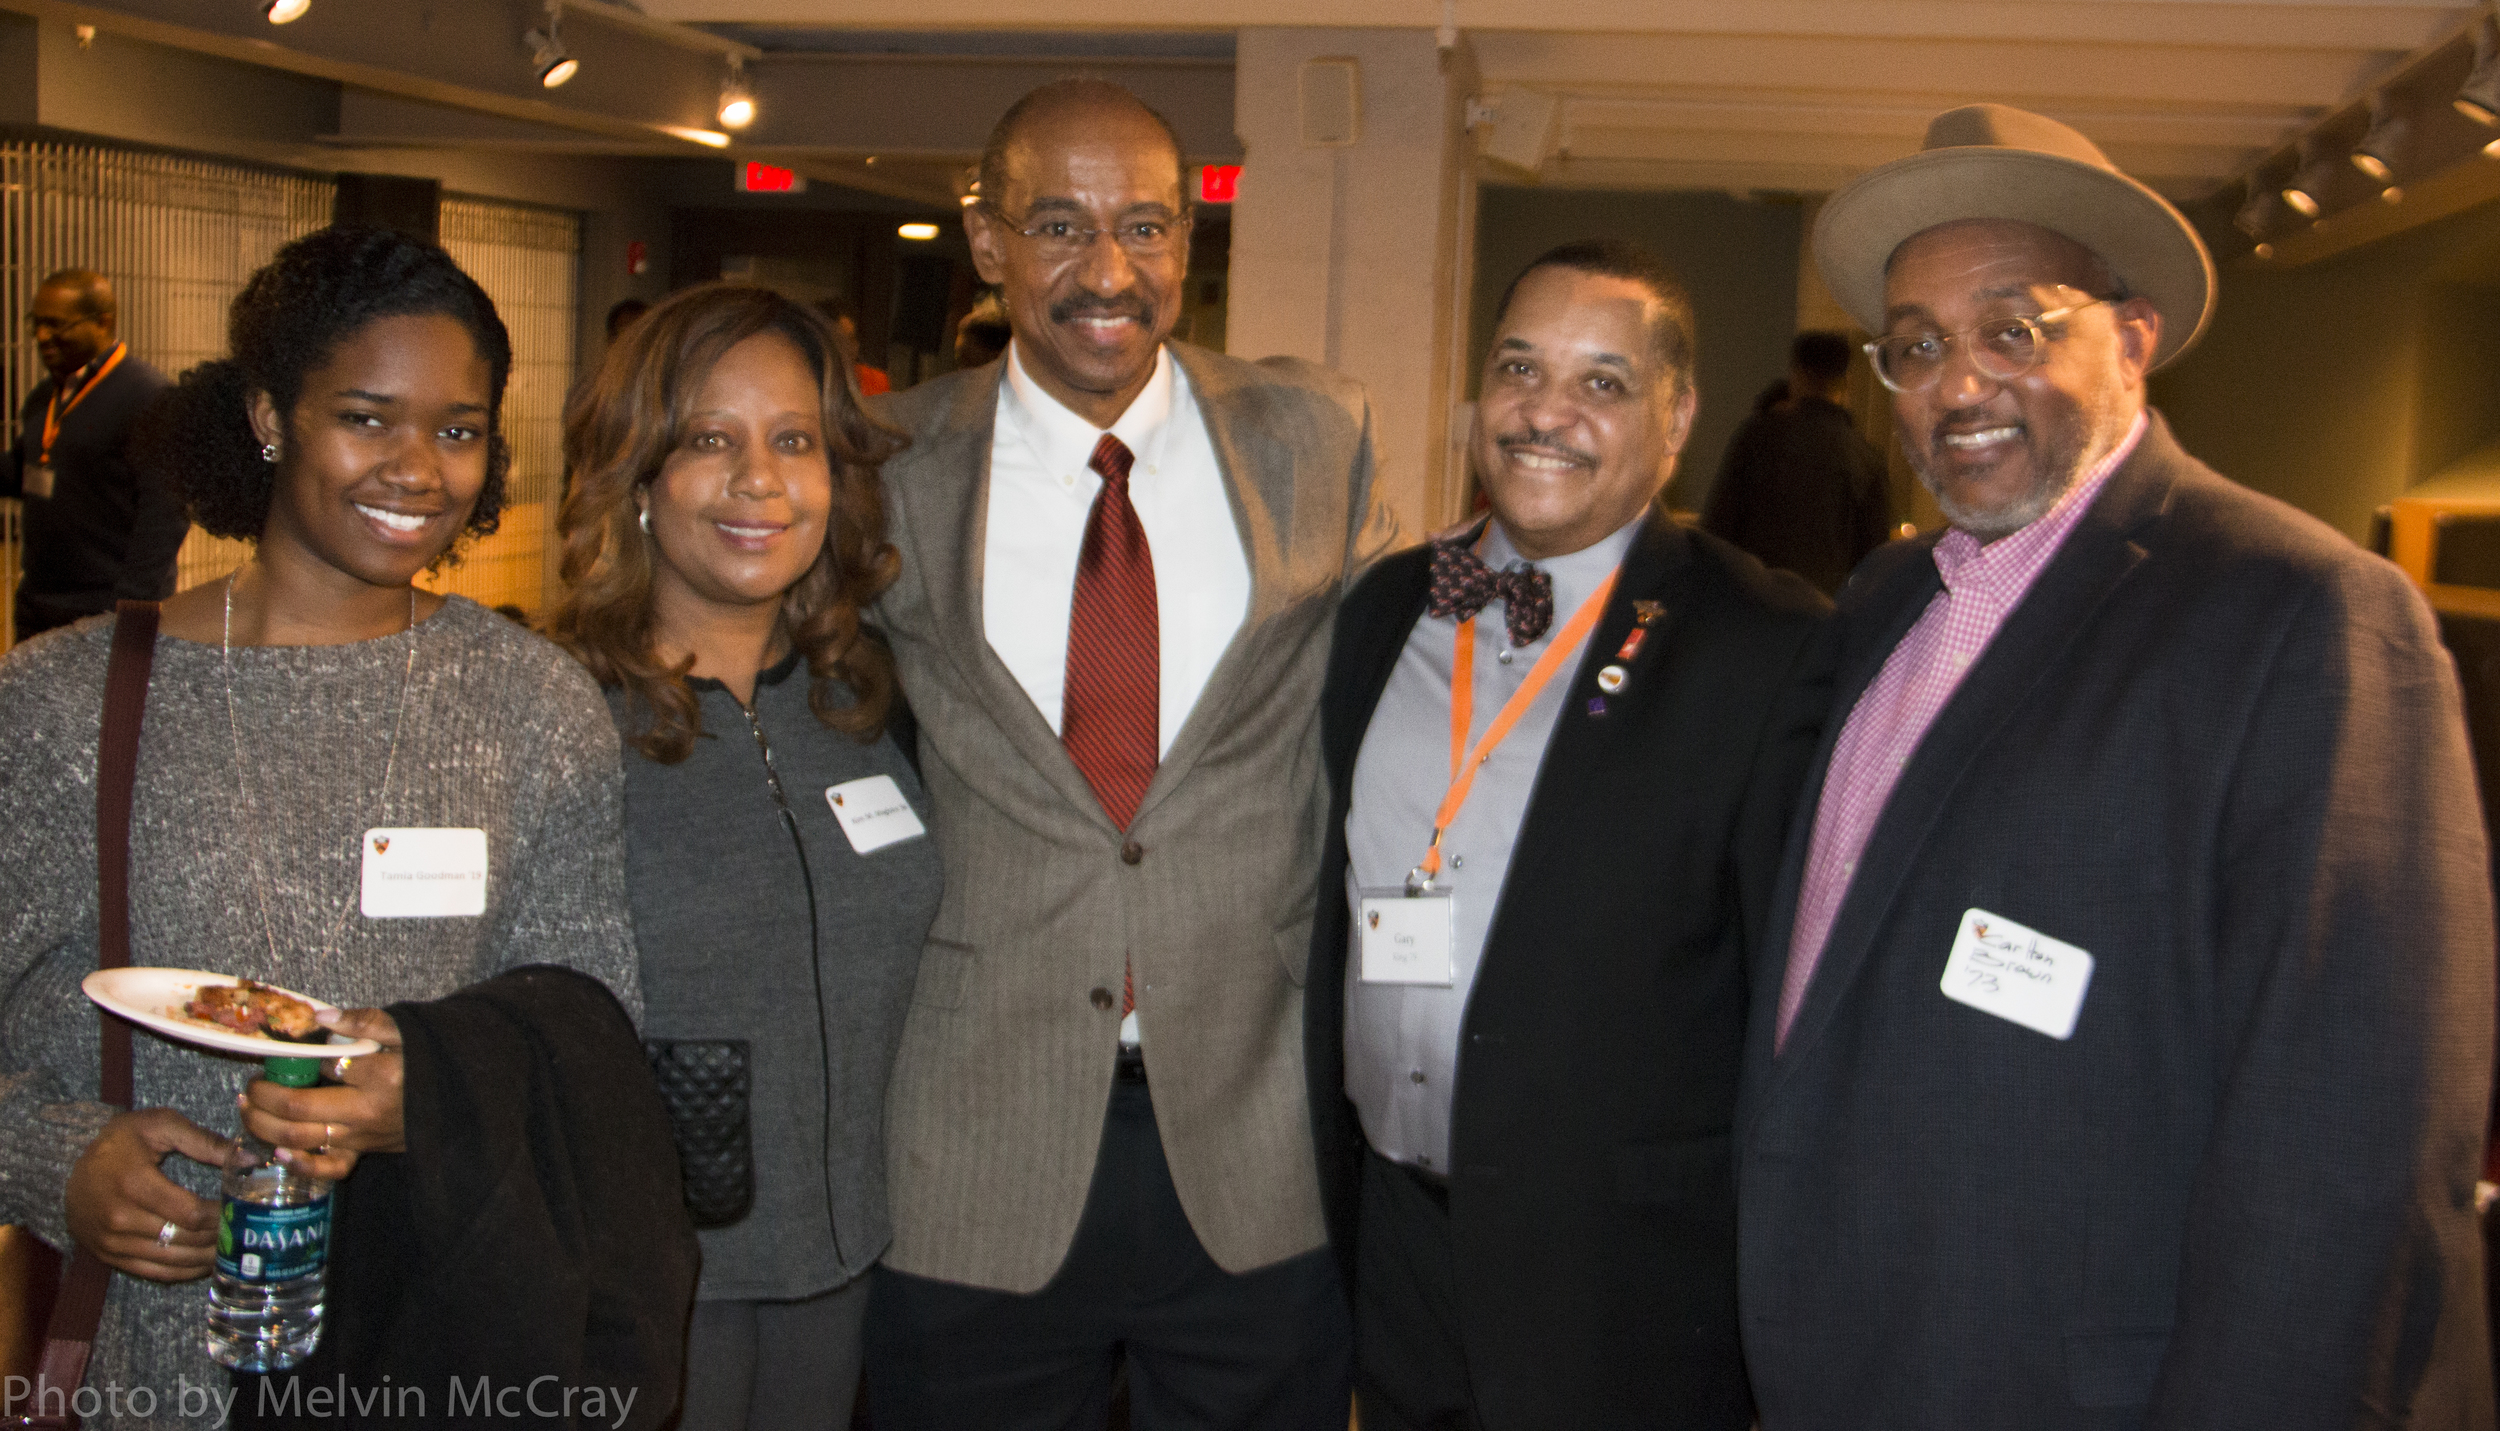 Princeton Alumni and undergraduates meet 3 photo by Melvin McCay-7665.jpg